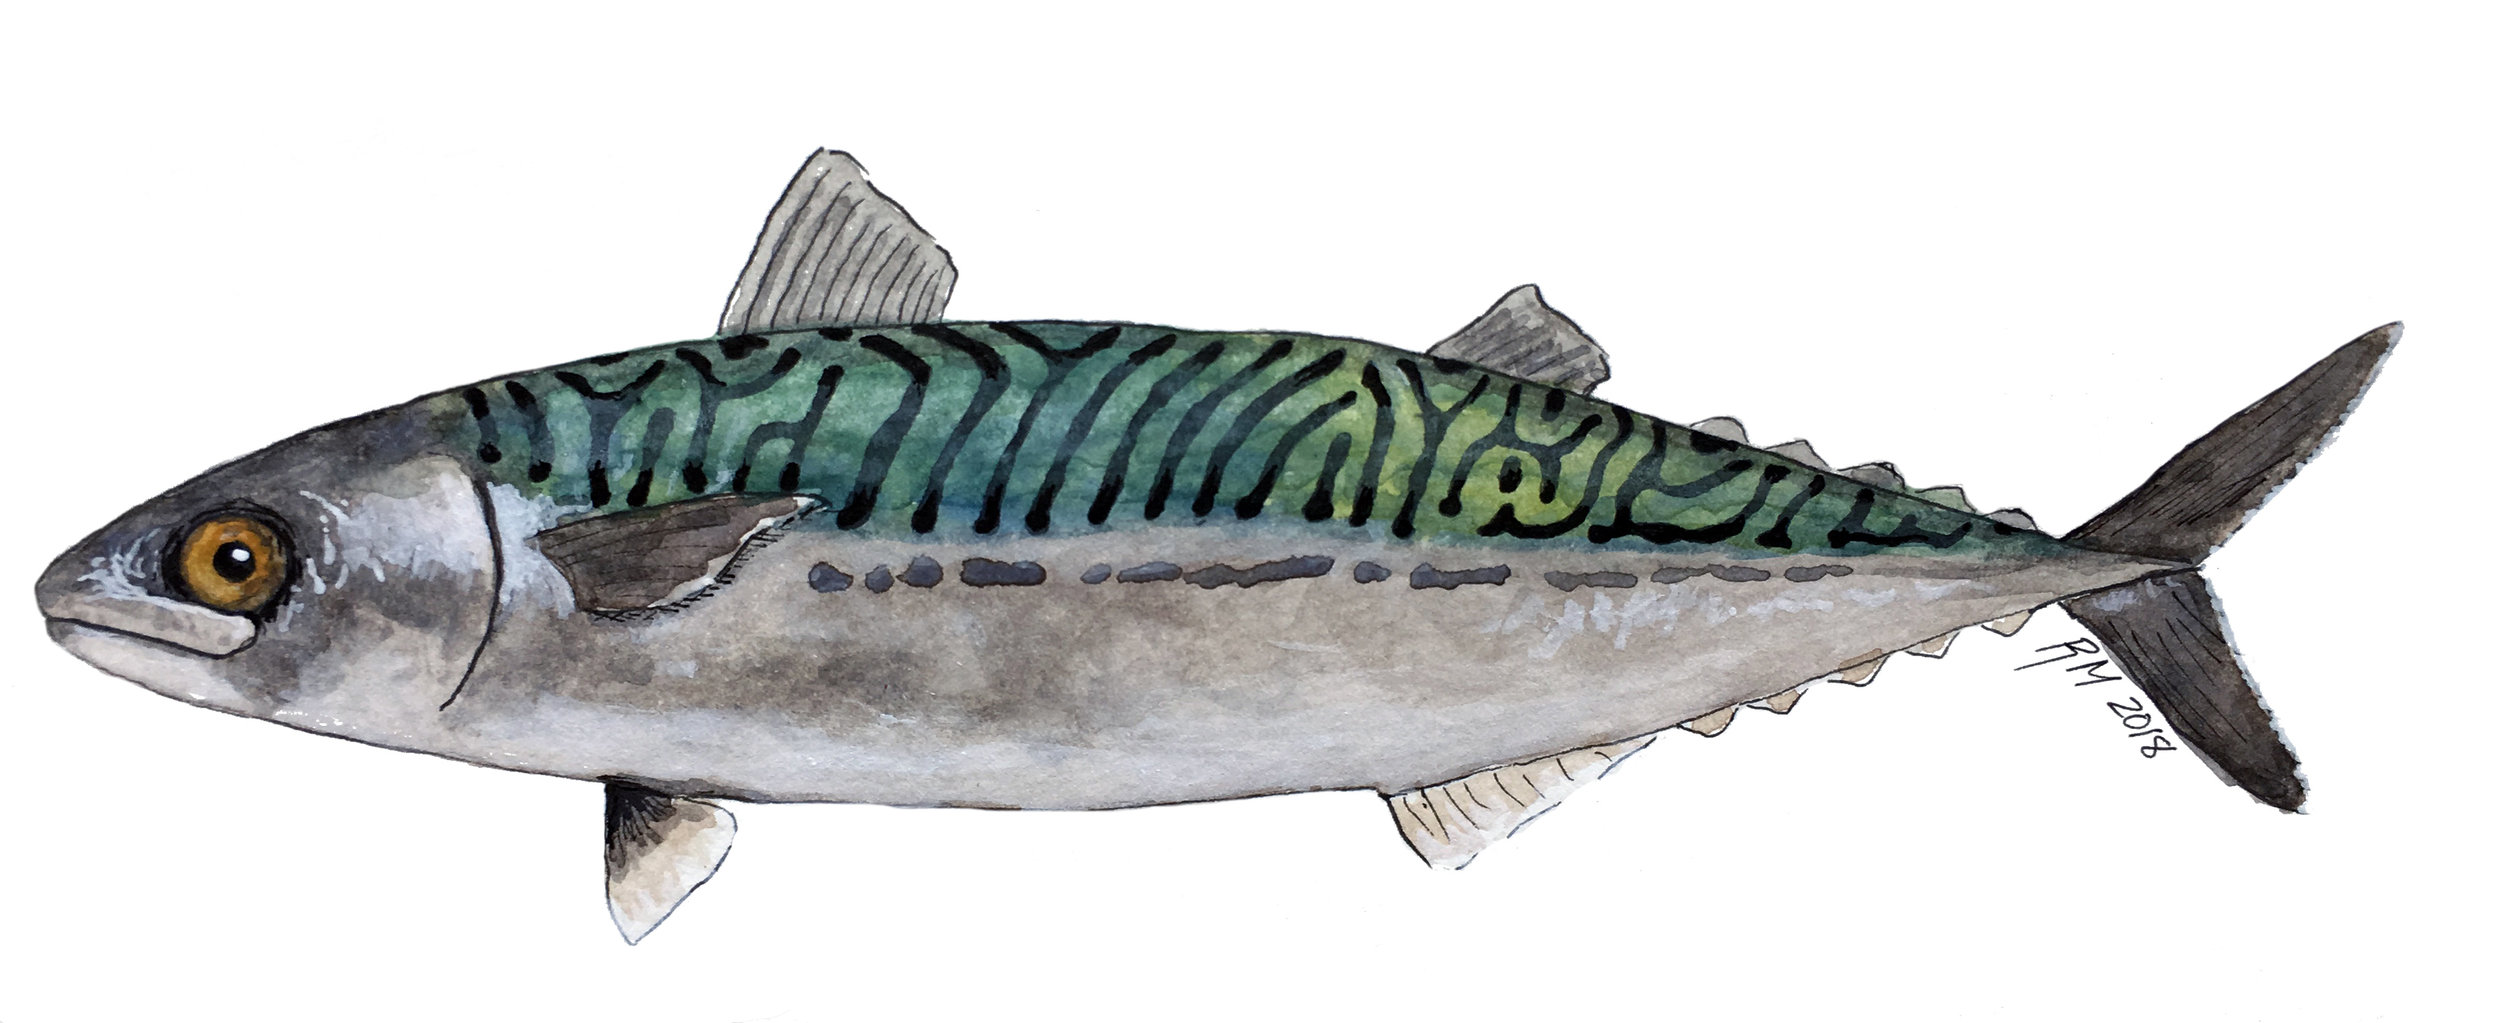 mackerel_compressed_1_14_2018.jpg